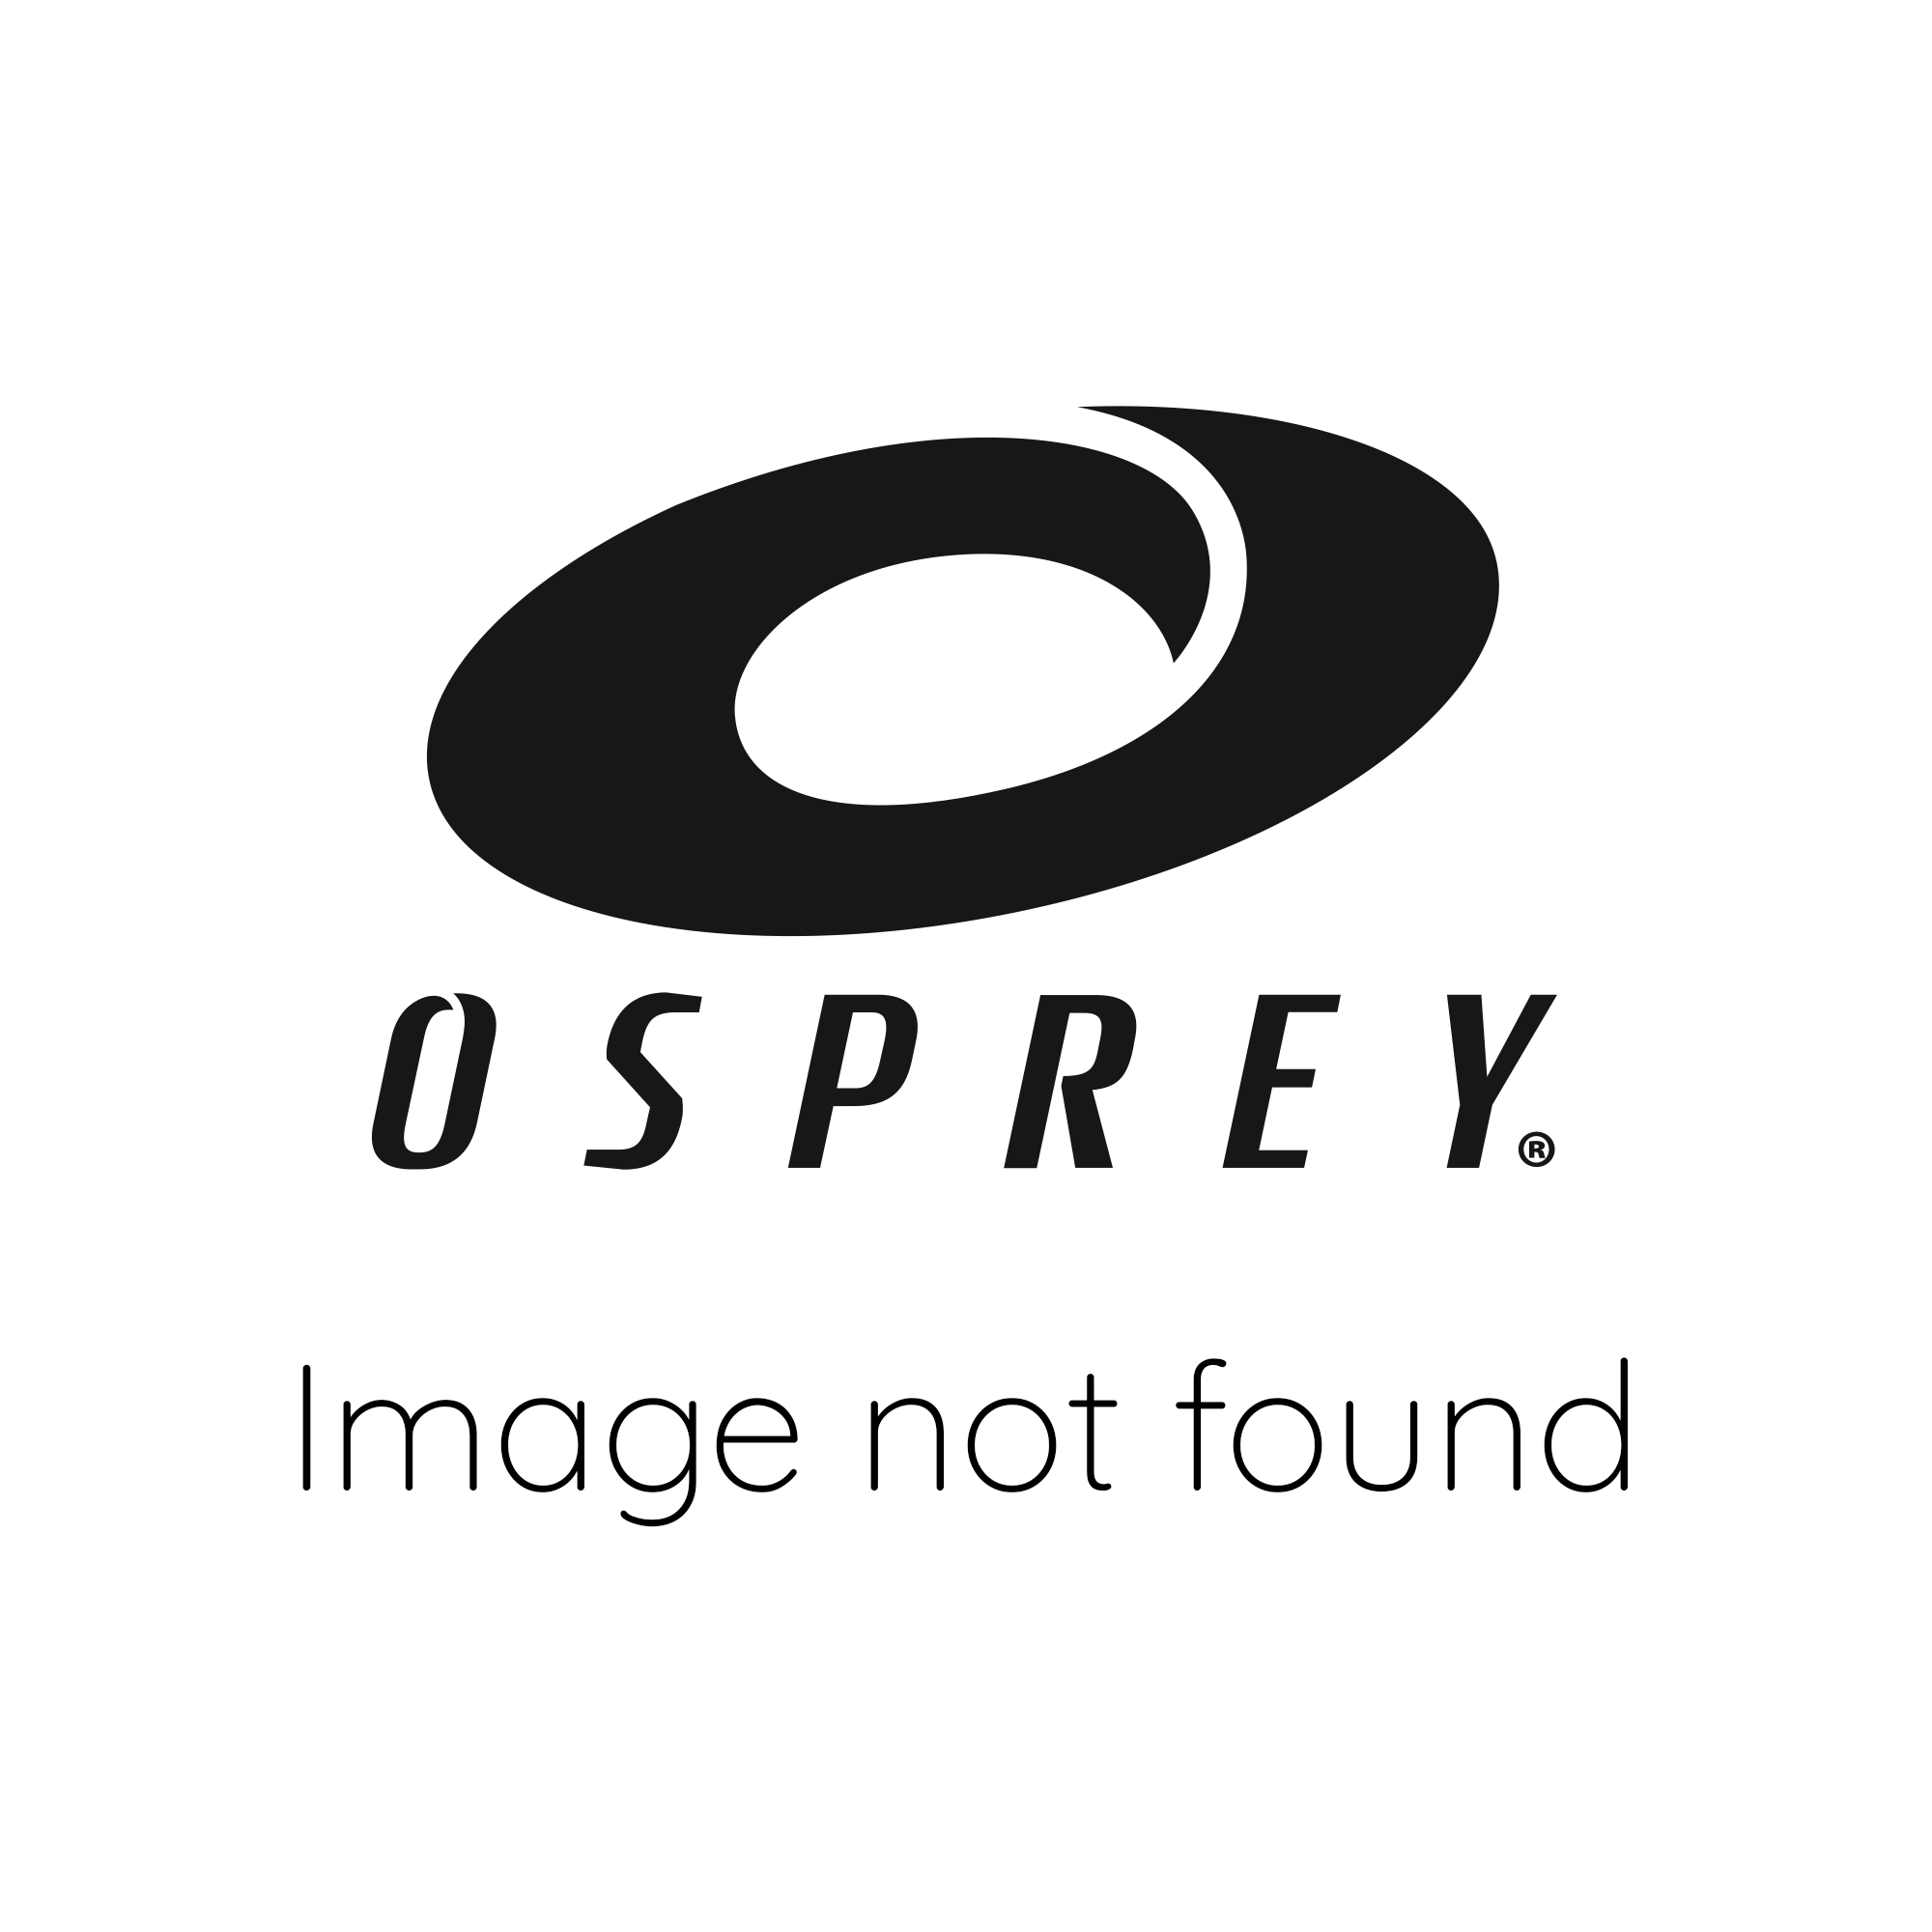 Osprey Mens 5mm Triathlon Full Length Wetsuit - Black